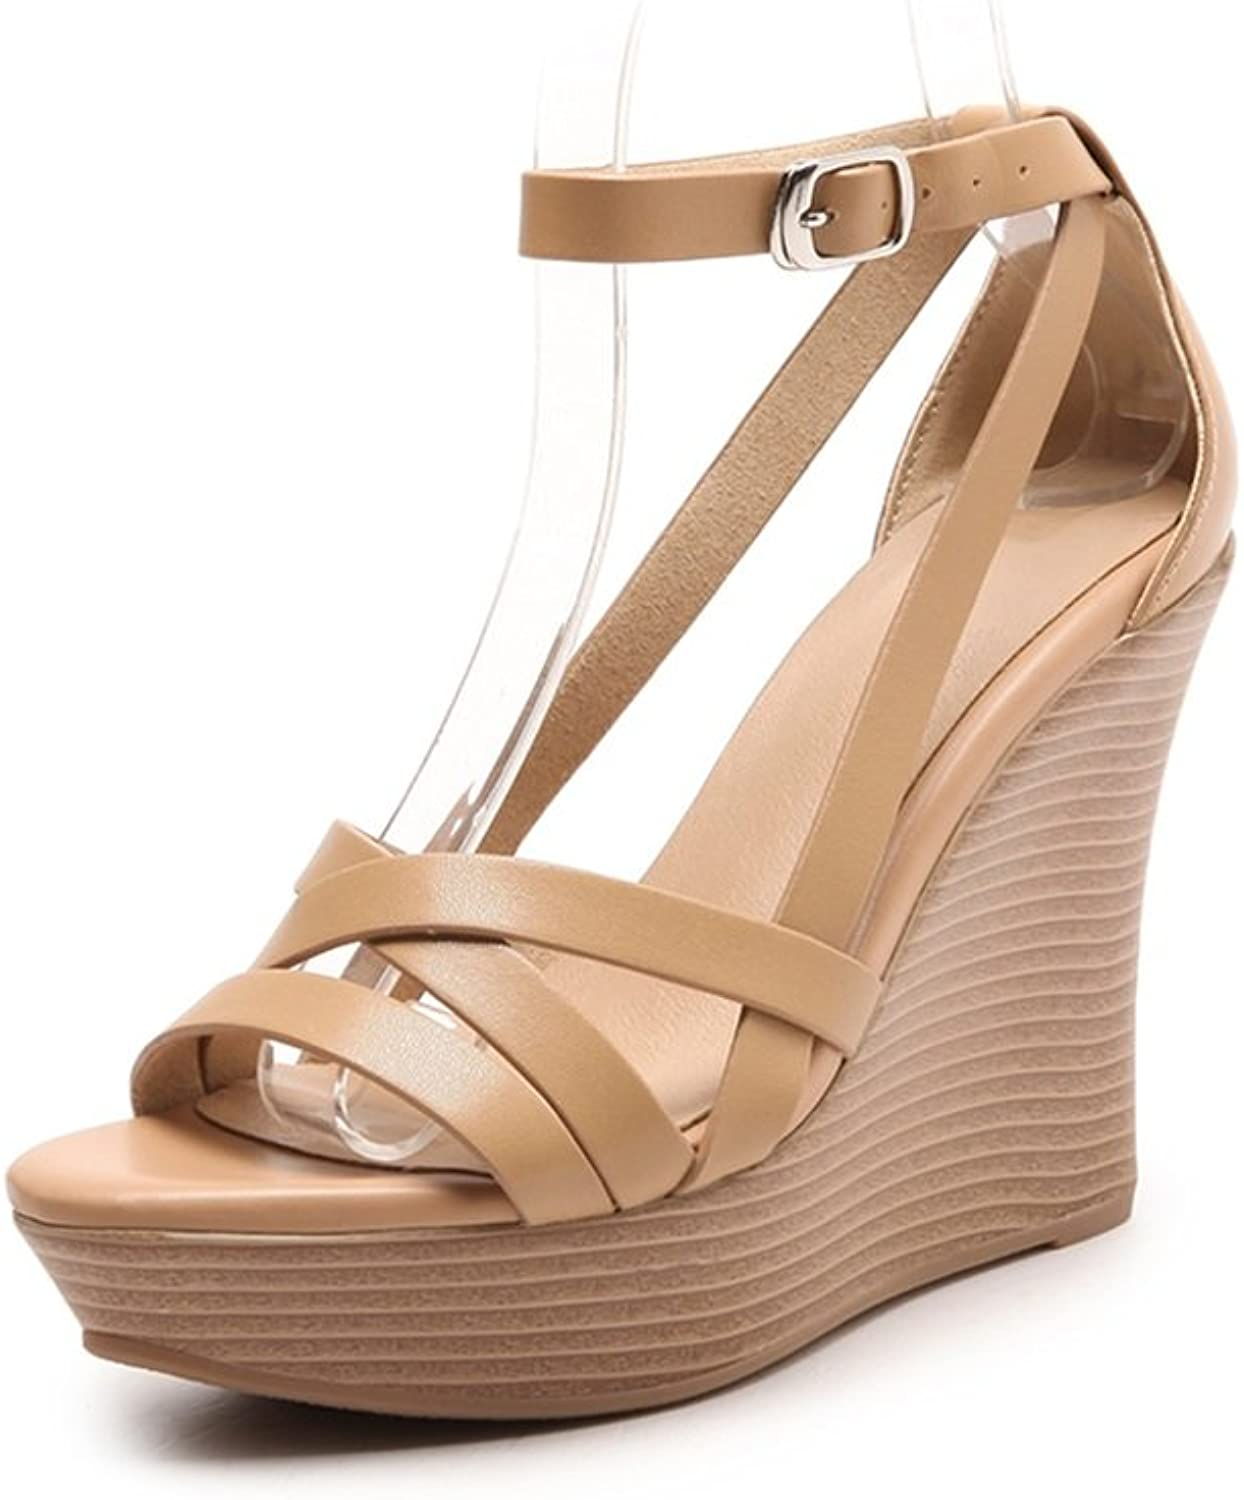 Summer New Women's sandals Slope with Thick Waterproof Platform Word Buckle sandals Ultra high-Heeled Sexy shoes 8 cm, Height 10 cm, Height 12 cm (color   8cm high, Size   34)